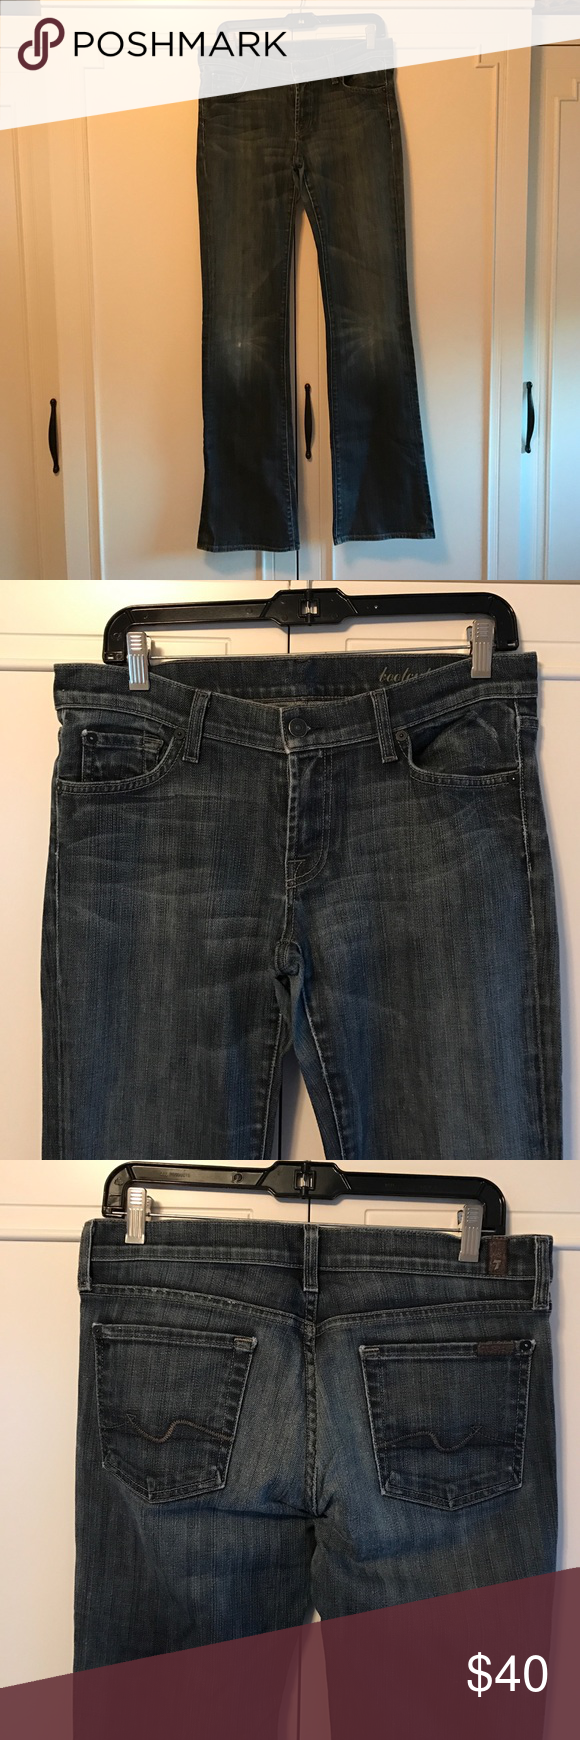 """7 for all mankind jeans 7 for all mankind boot cut jeans. Color is more of a greyish blue. Tiny little distress mark on right knee. Size 29, 33 1/2"""" inseam, 8"""" rise 7 For All Mankind Jeans Boot Cut"""